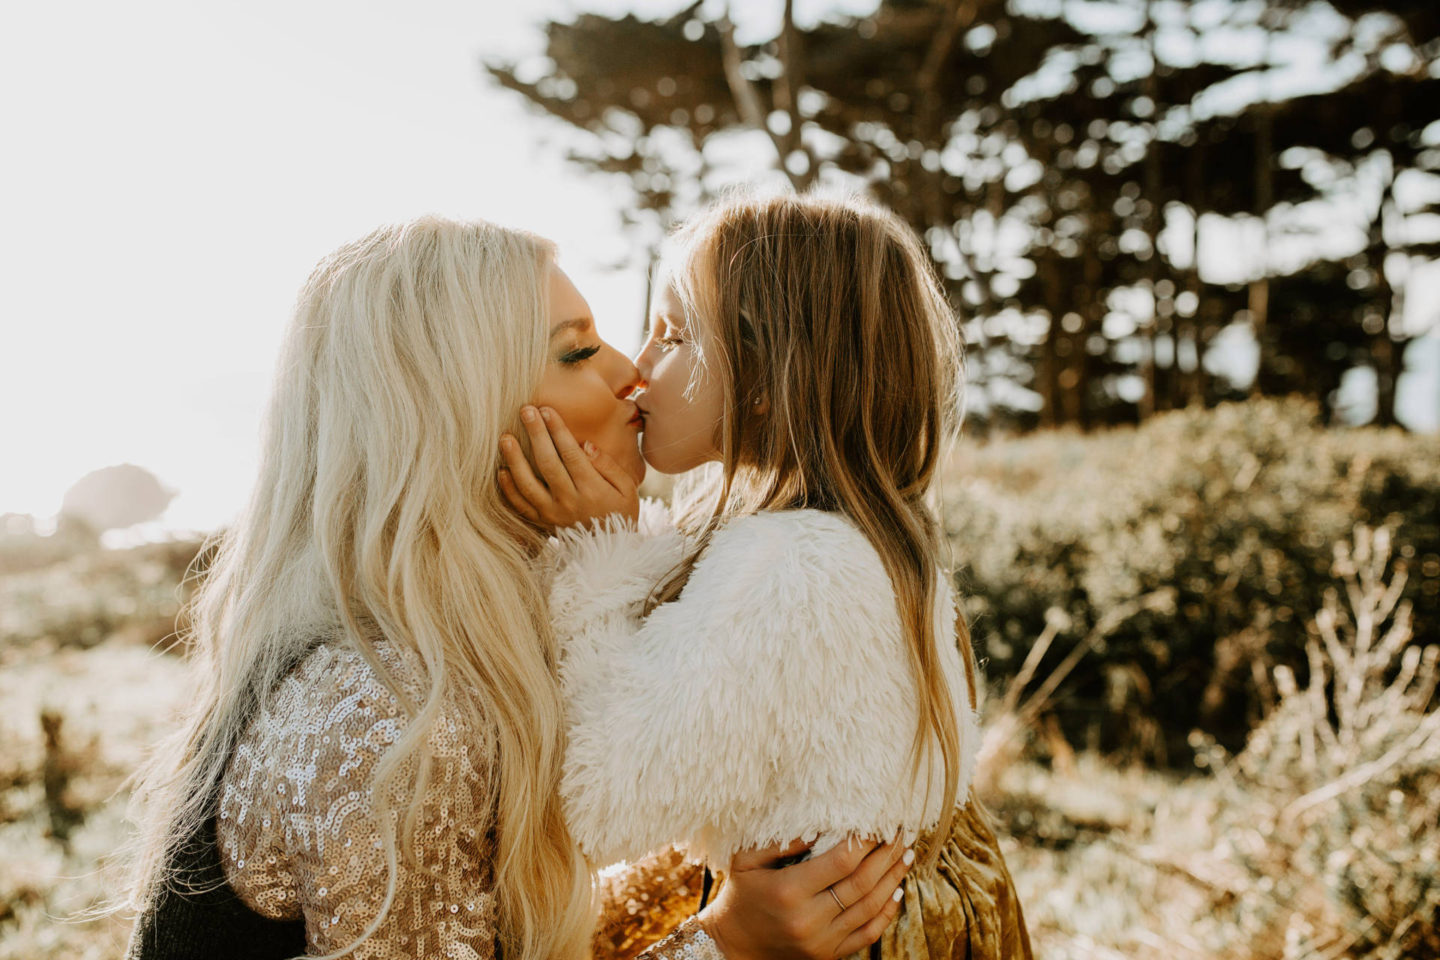 A letter to my daughter – God knew I needed you